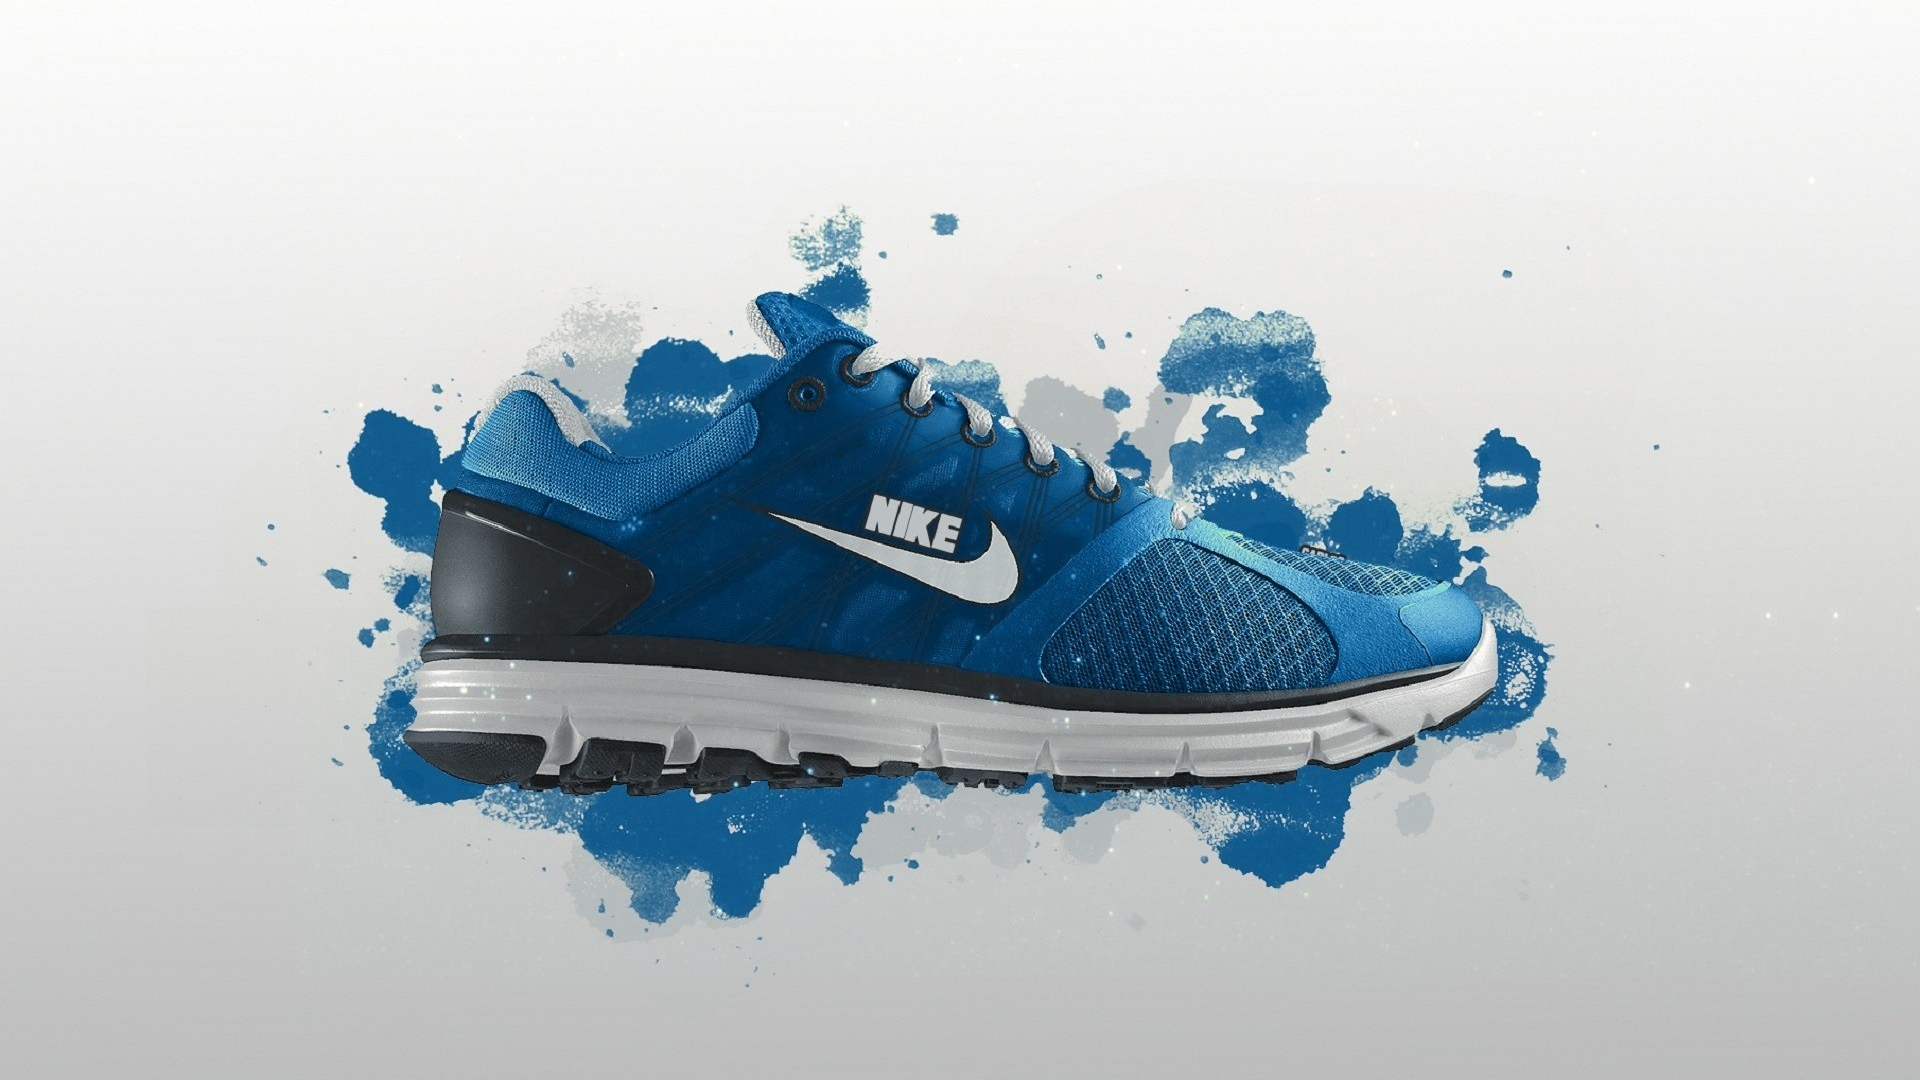 Download Wallpaper 1920x1080 Nike Shoes Sneakers Blue Sports